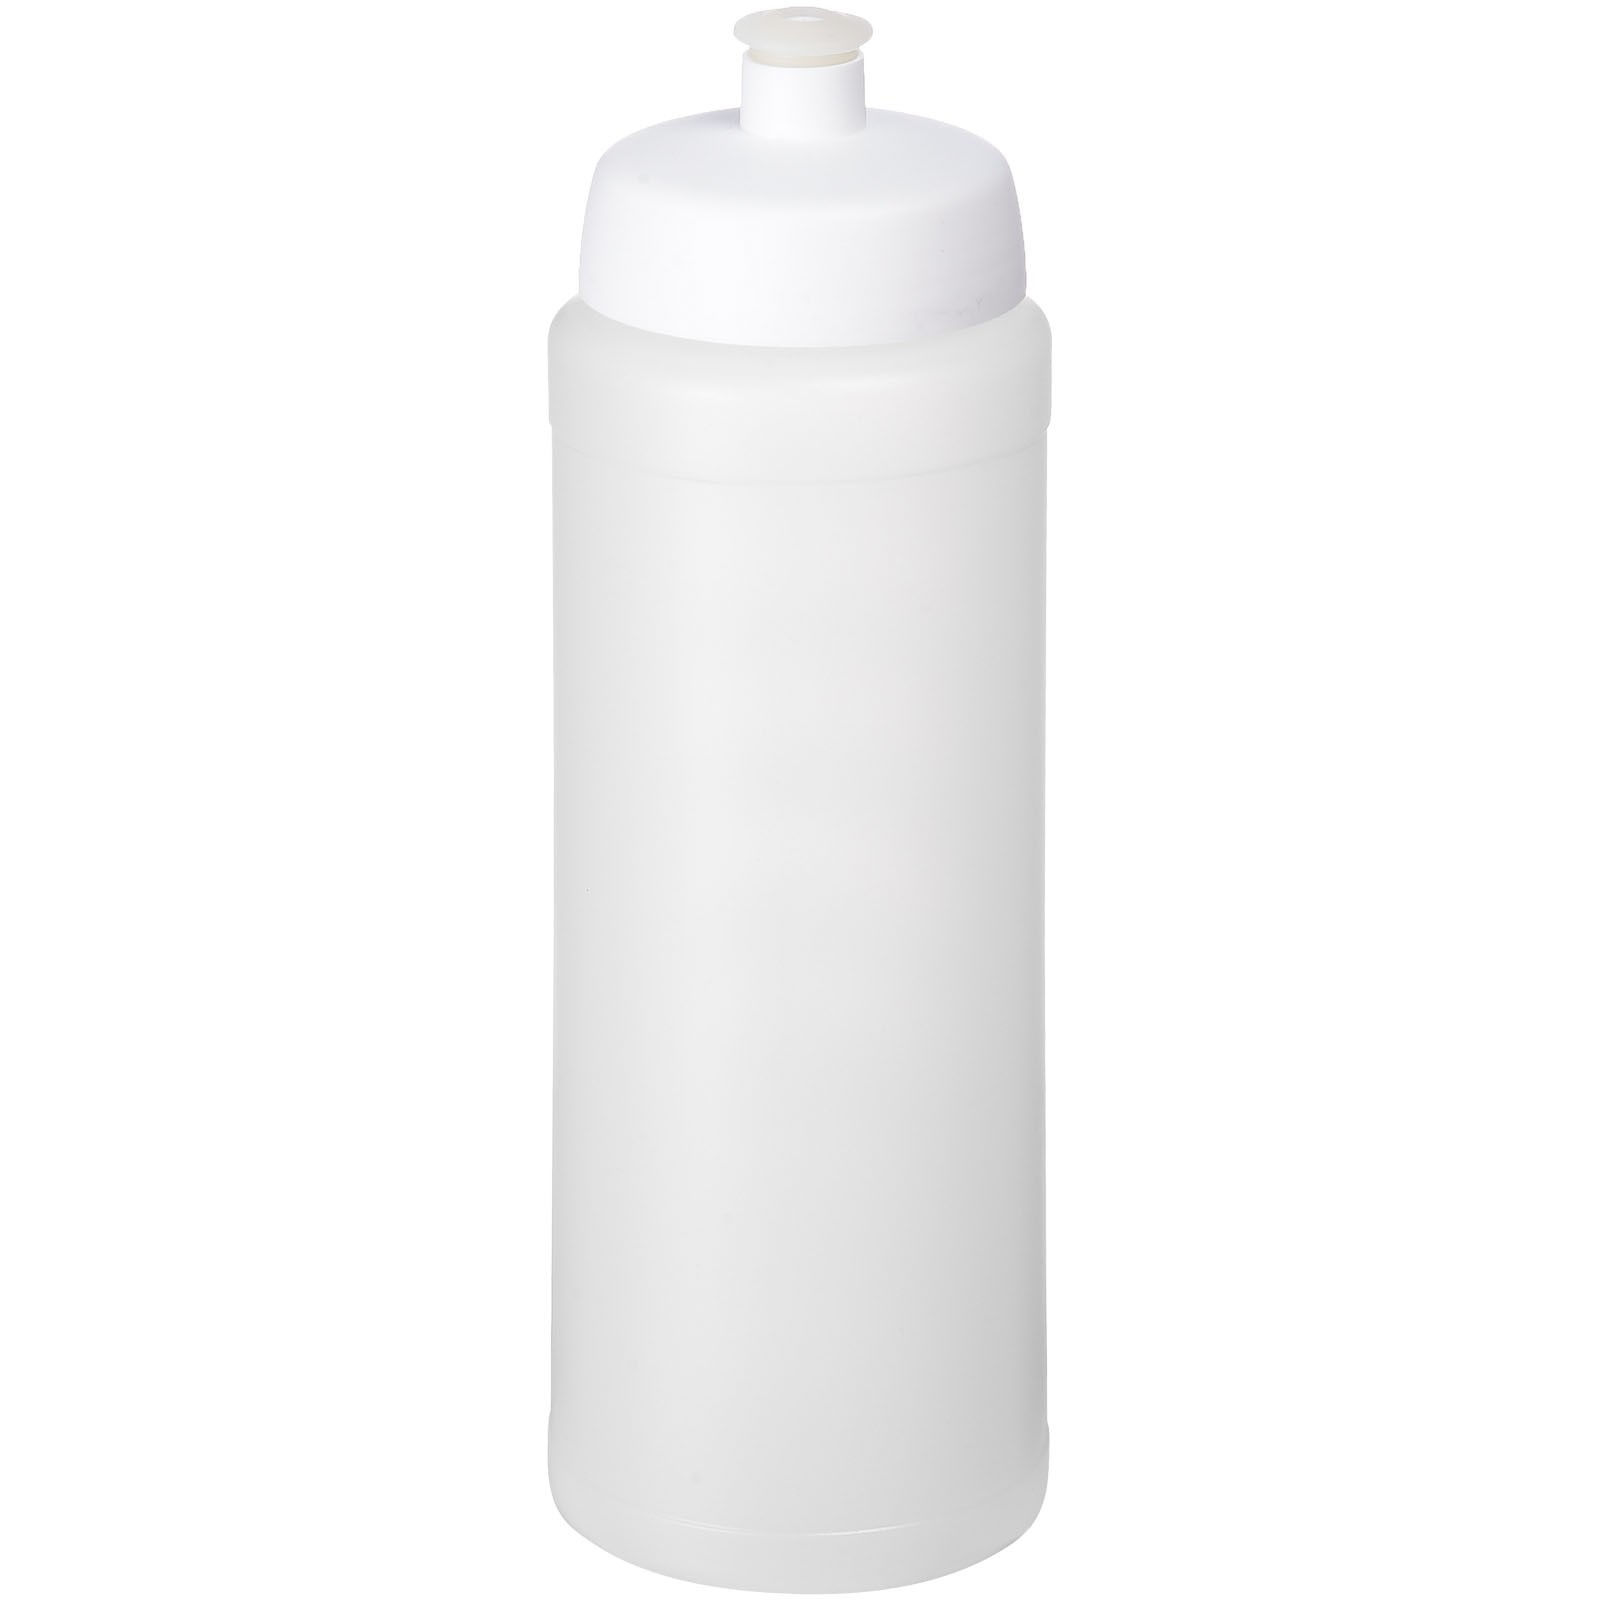 Baseline® Plus grip 750 ml sports lid sport bottle - Transparent / White